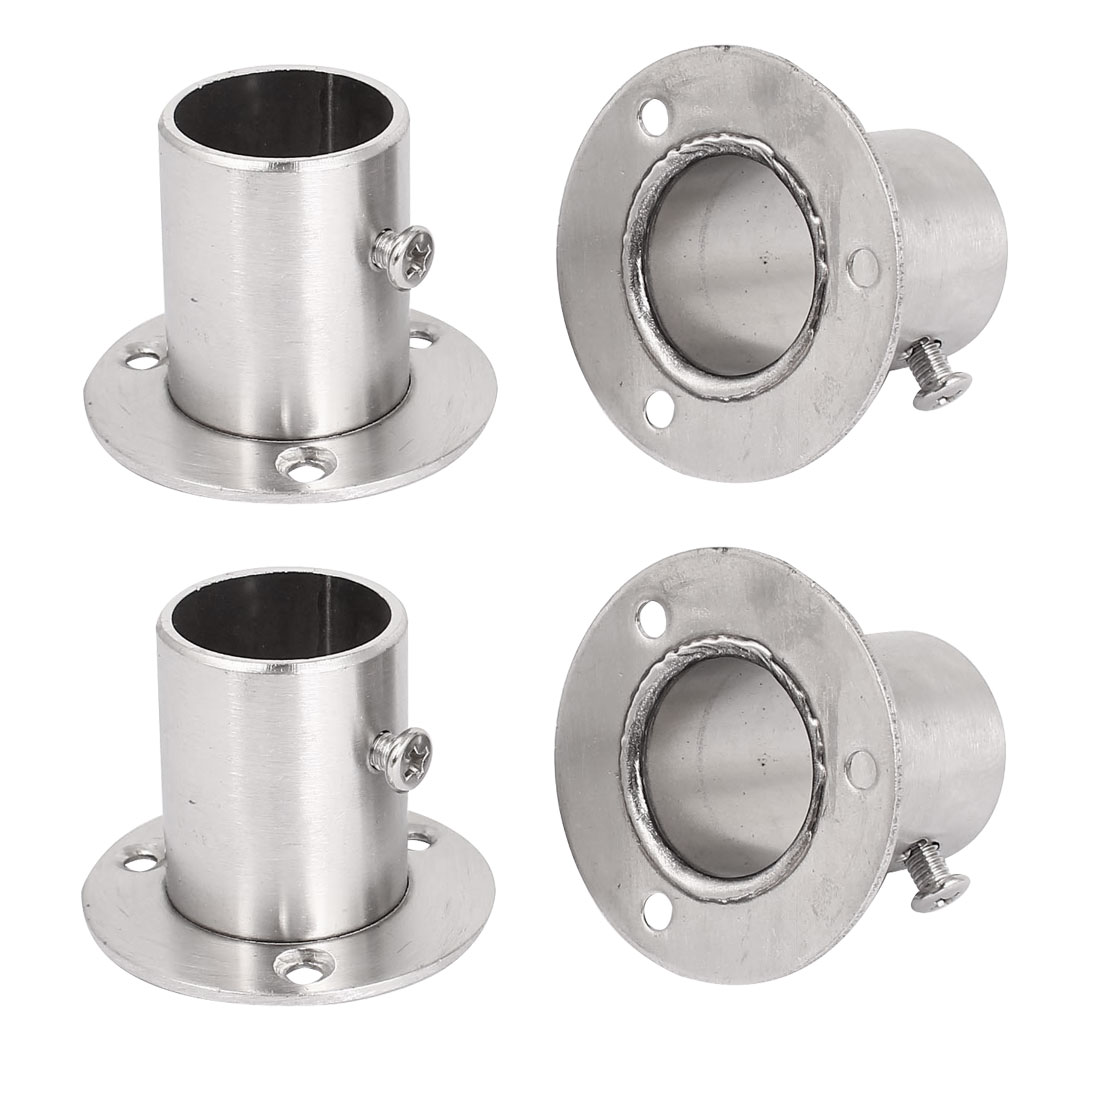 4pcs Wardrobe Stainless Steel Rail Rod End Support Bracket Socket for 25mm Tube